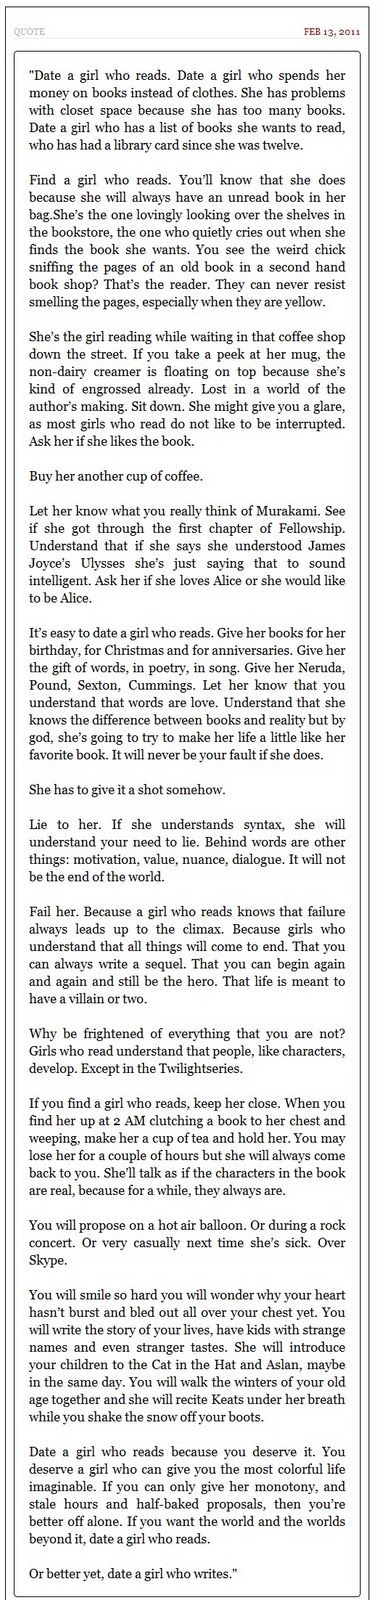 date a girl who reads...